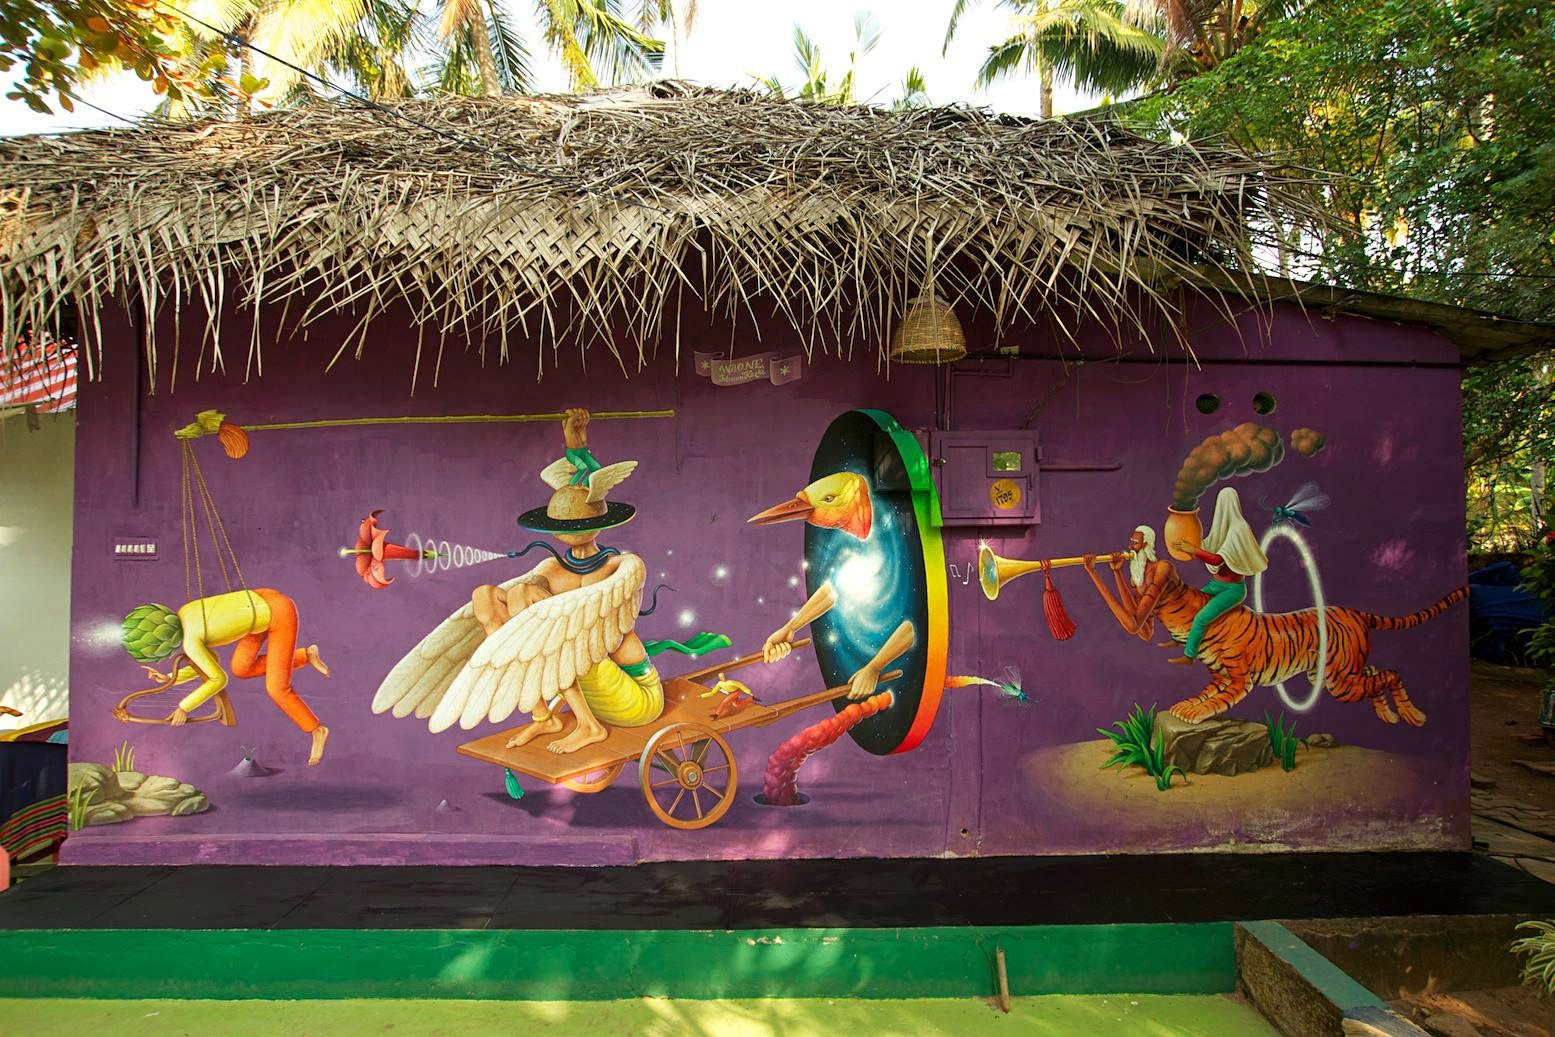 Waone from Interesni Kazki is back in the coastal town of Varkala in India where he just finished working on this new mural.